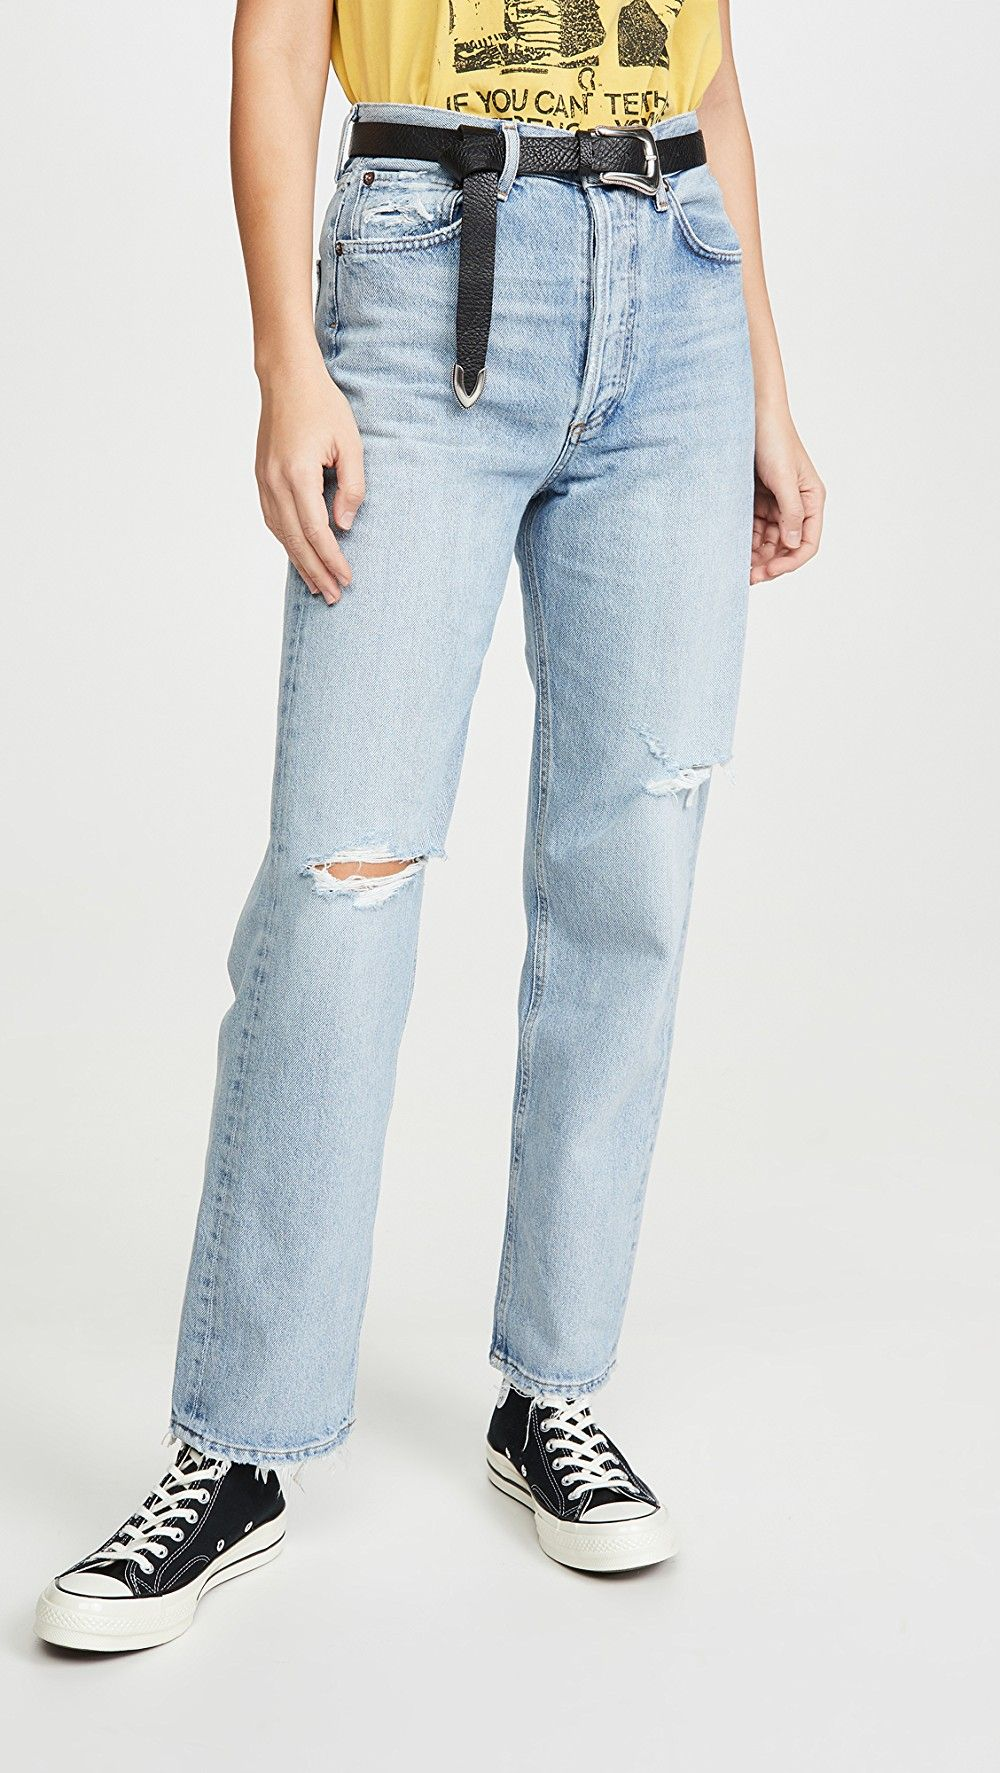 My Jeans Never Hit Below My Belly Button—These Are the Only Brands I'll Wear 8